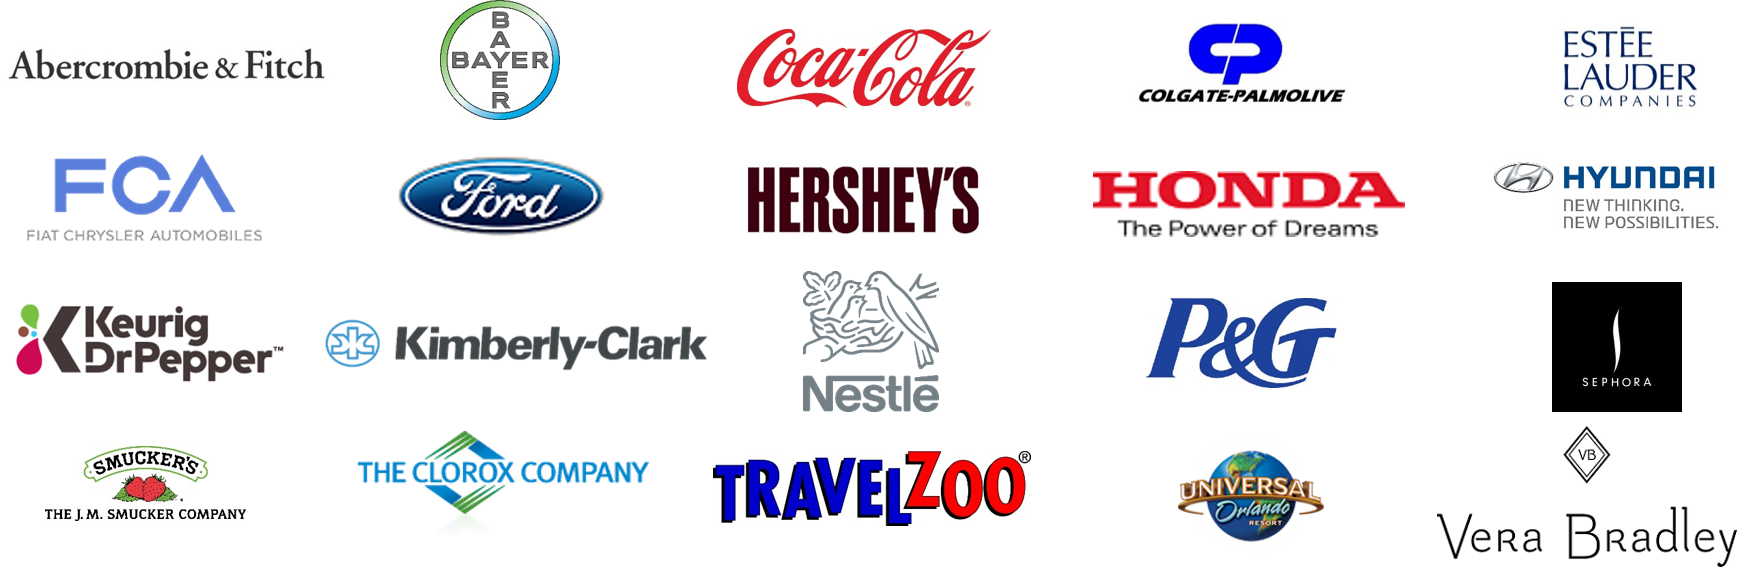 2019 Notable Brands